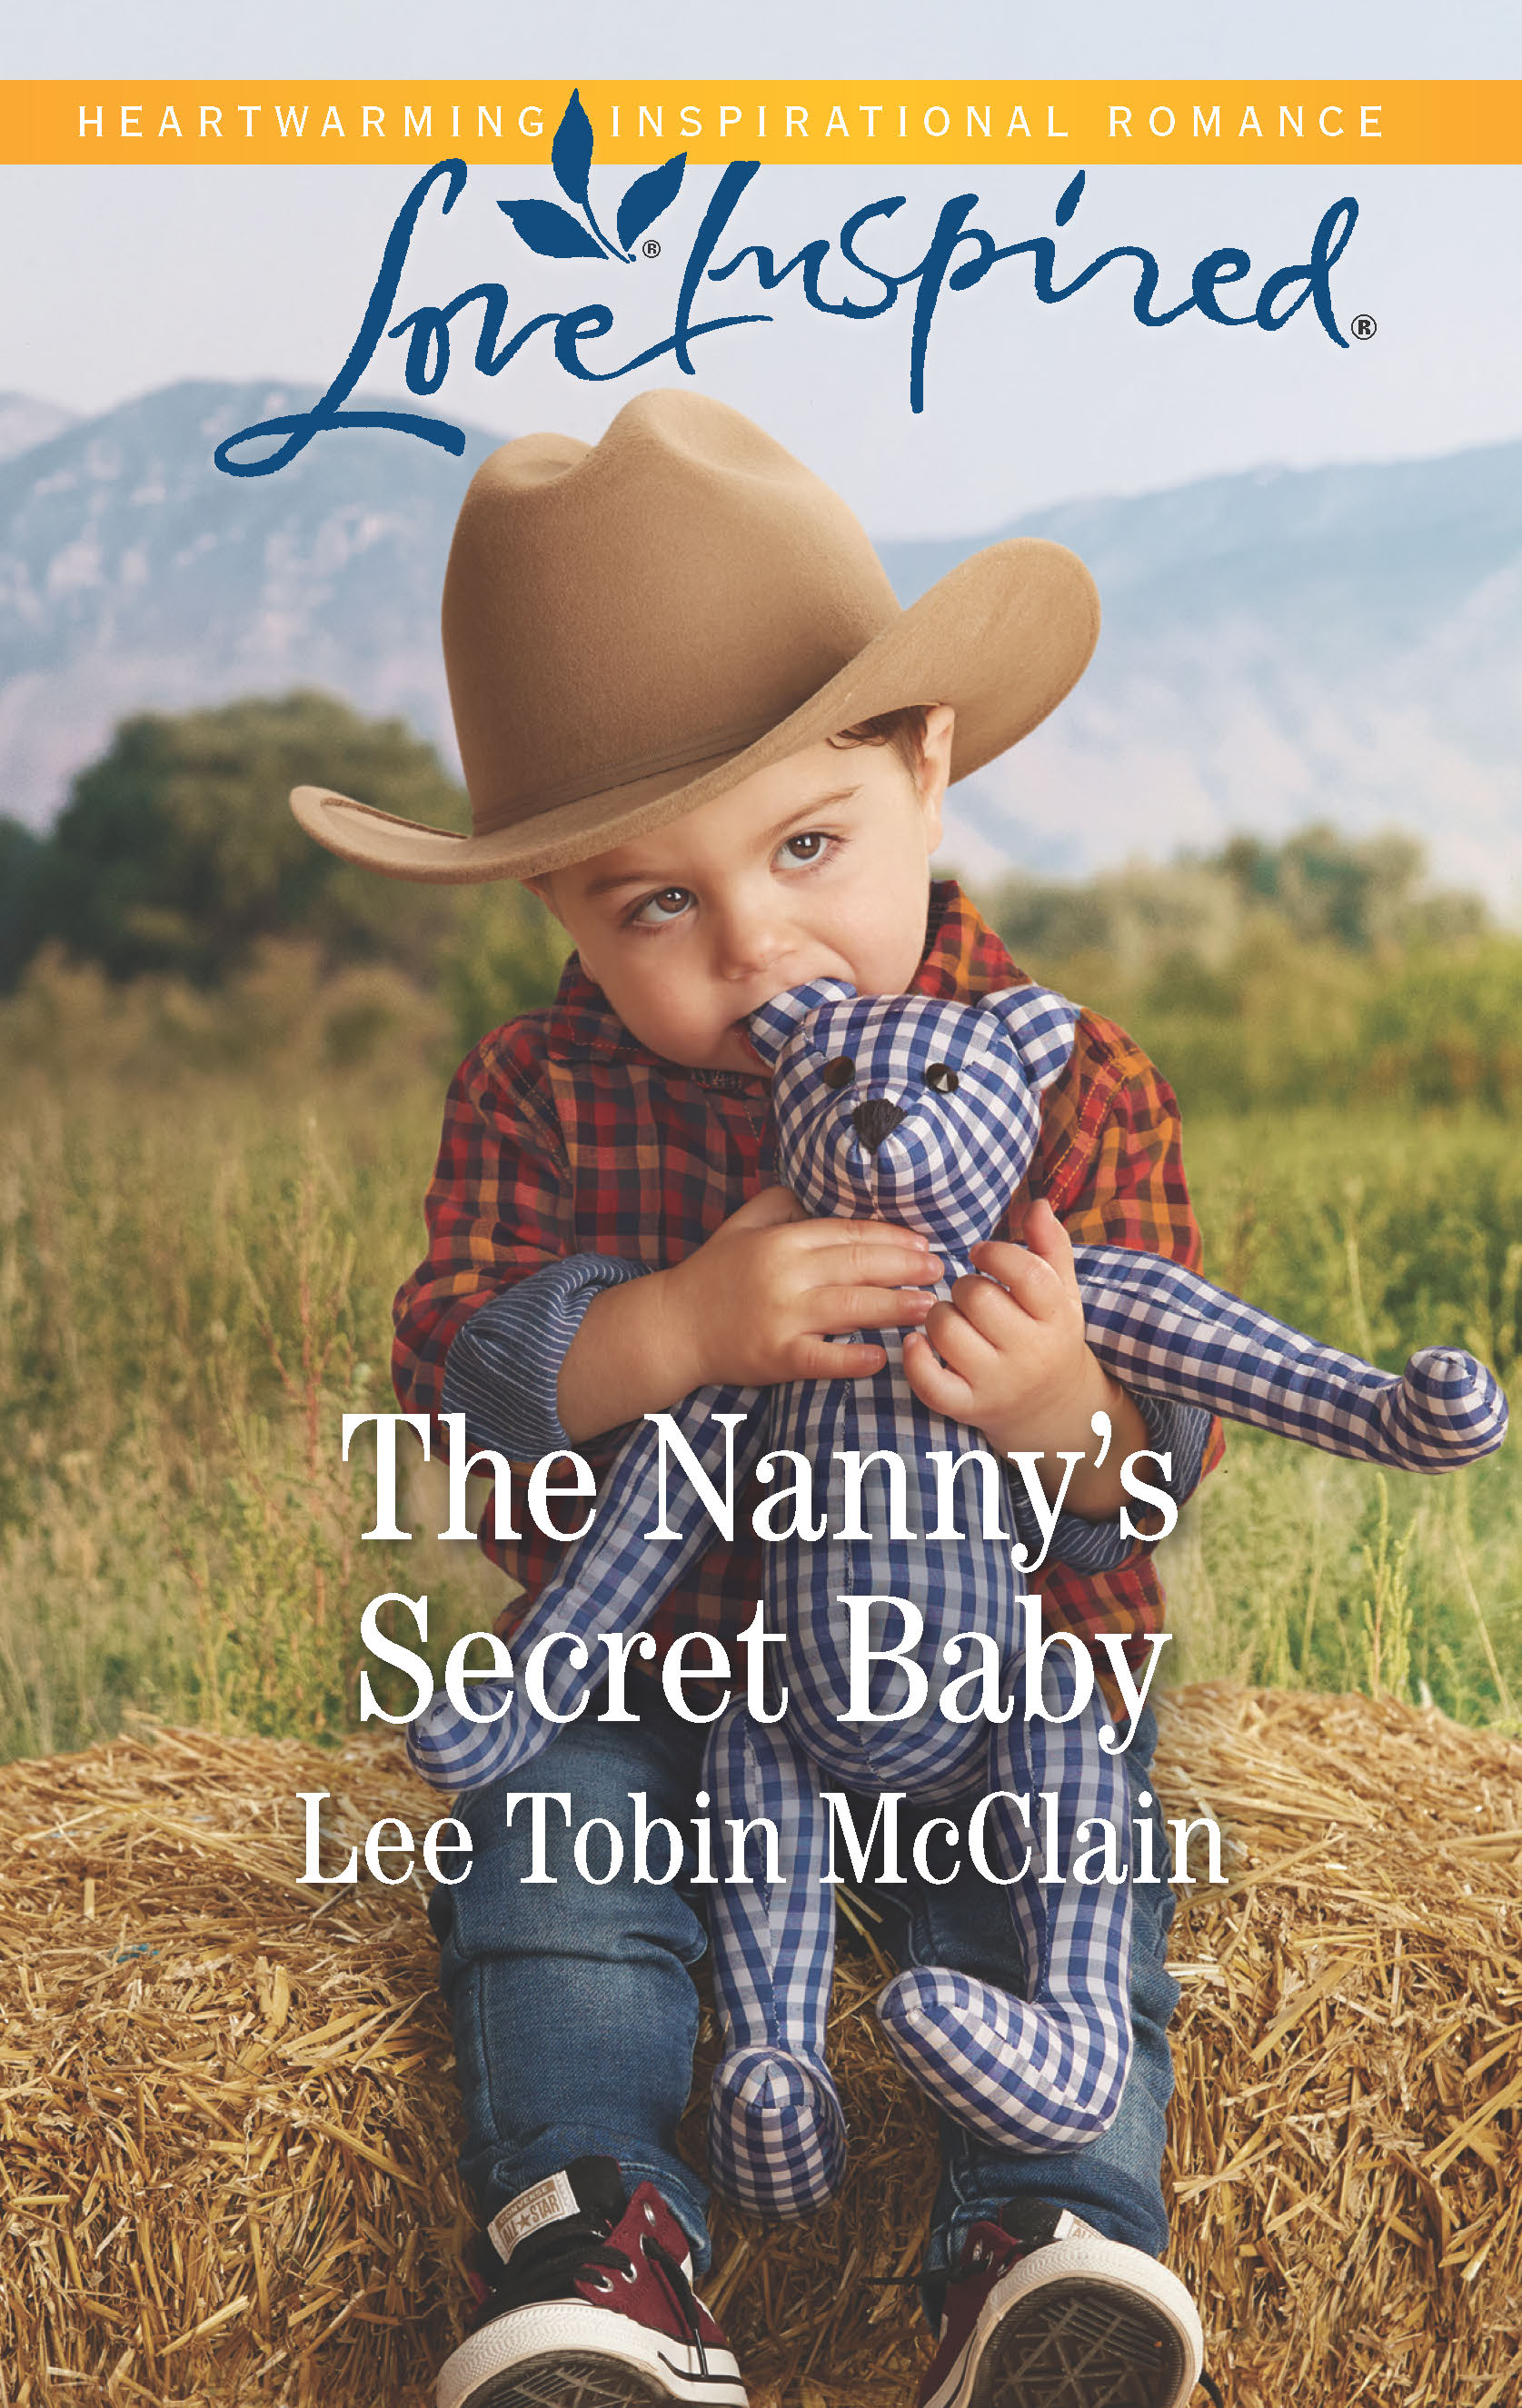 The Nanny's Secret Baby